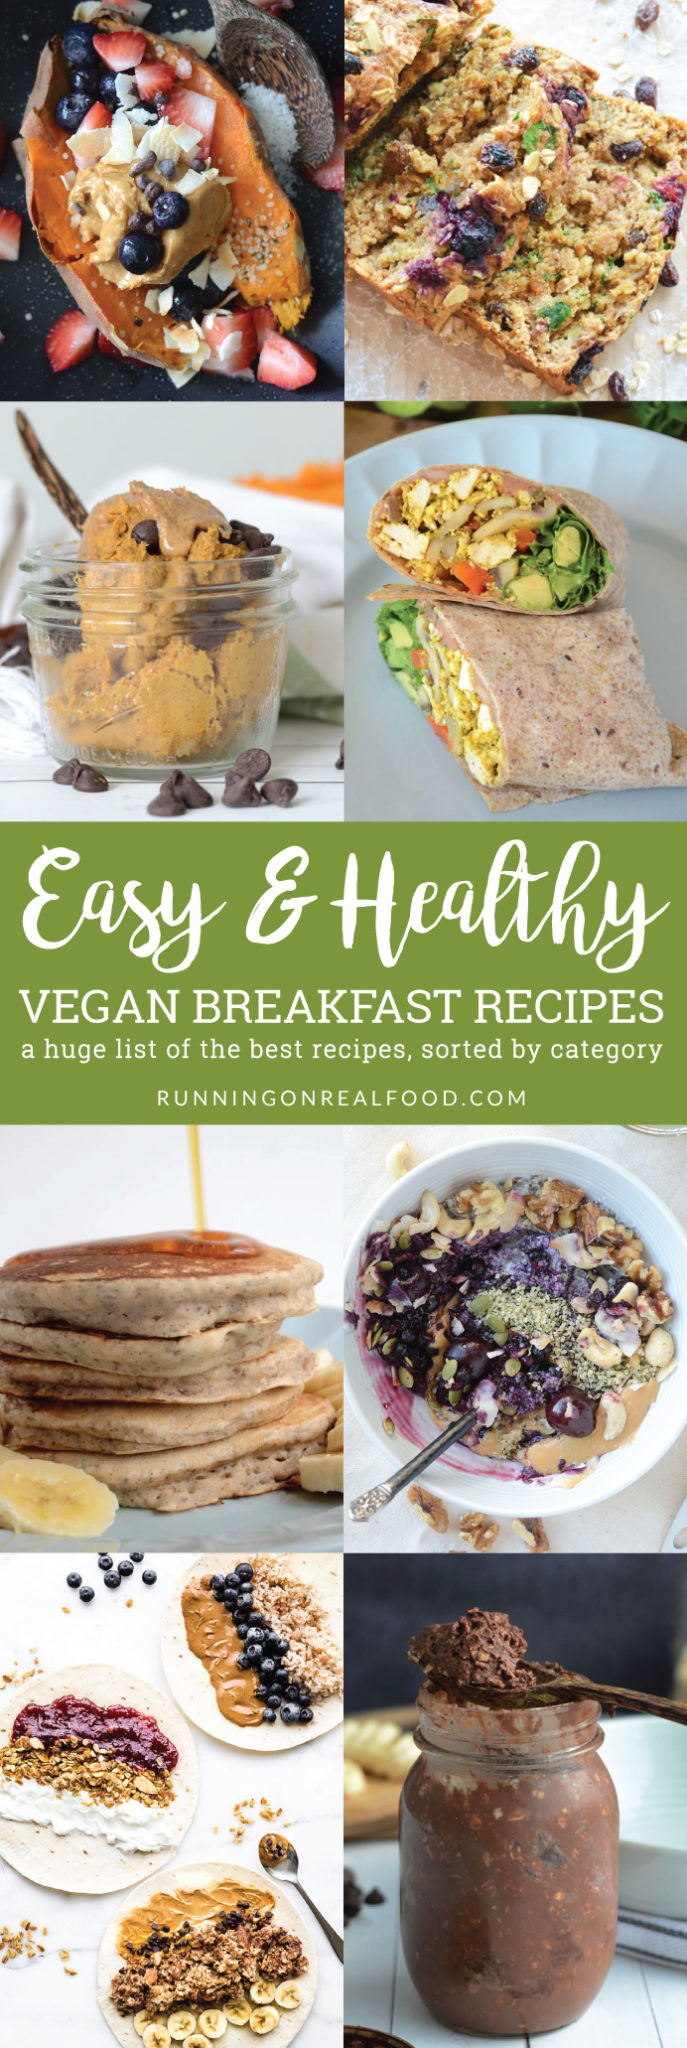 Easy Vegan Breakfast Recipes  Easy Healthy Vegan Breakfast Recipes Running on Real Food